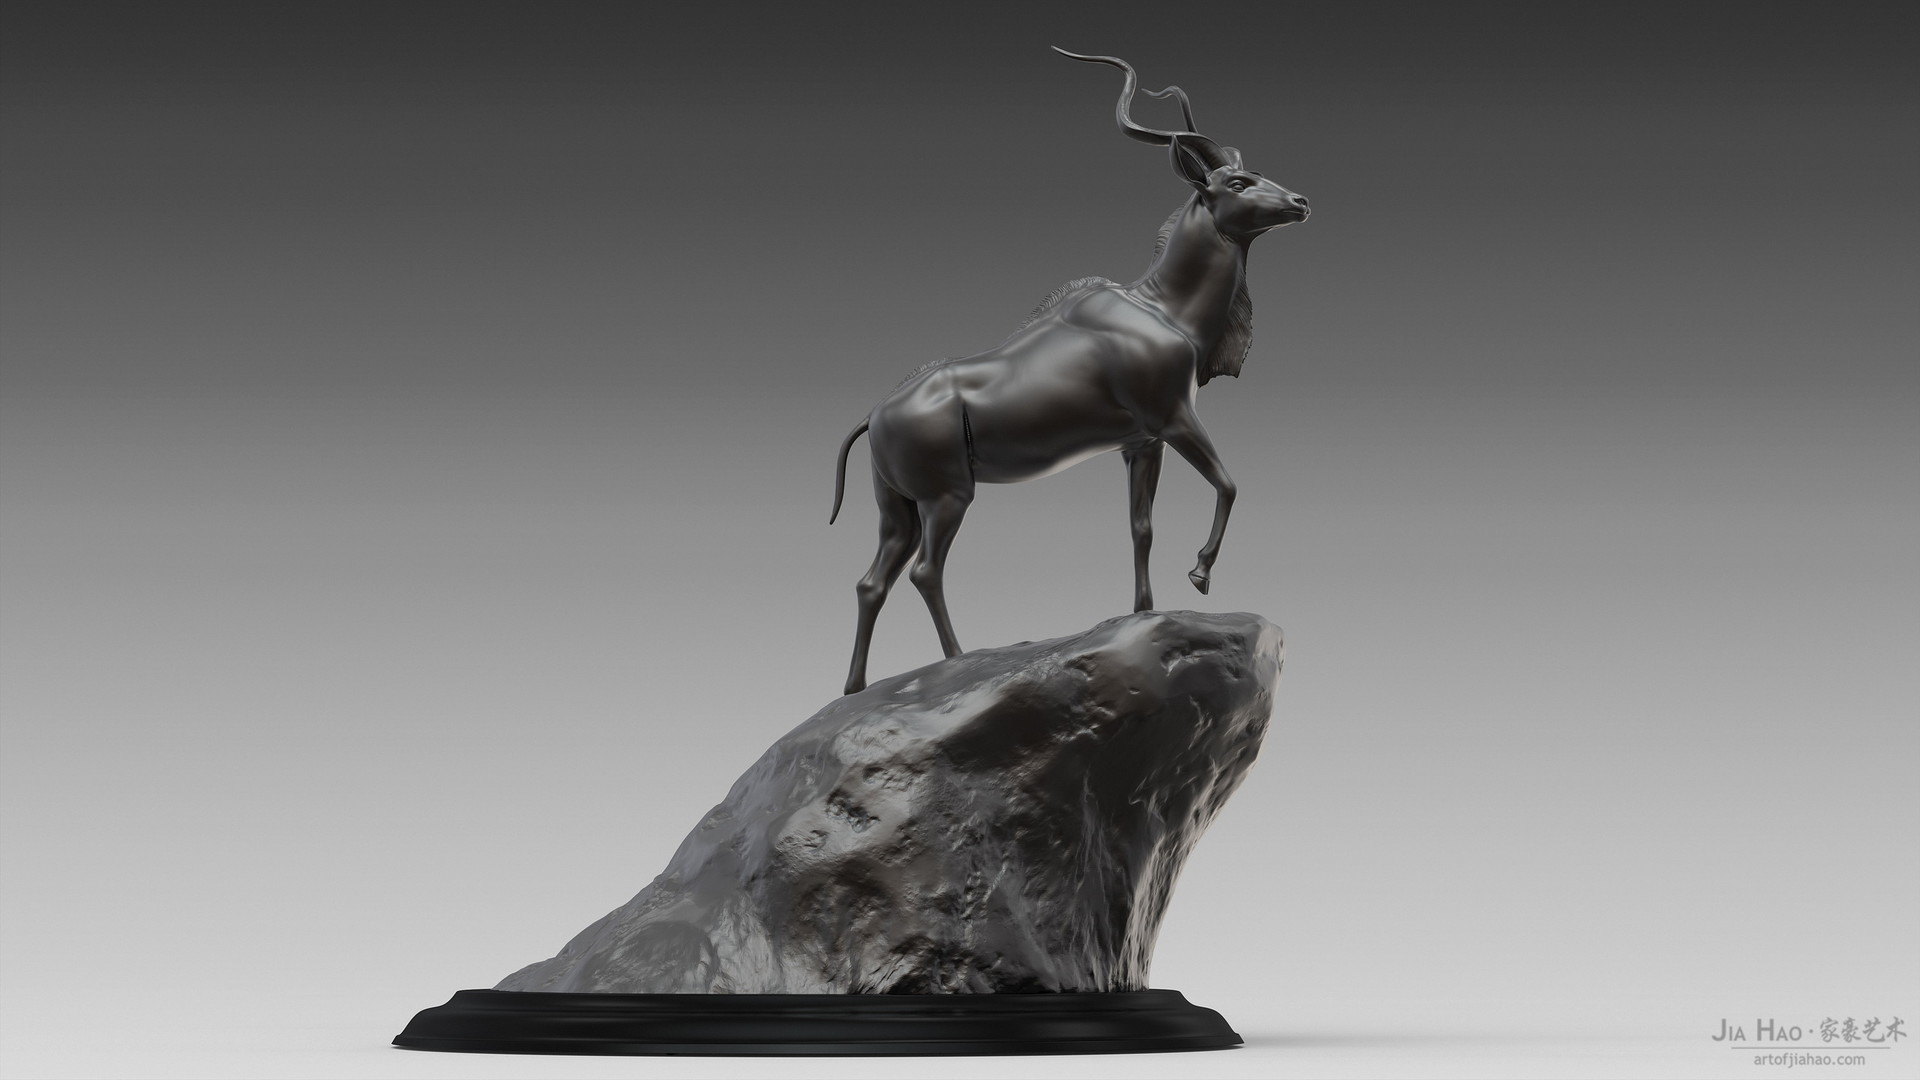 Jia hao greaterkudu digitalsculptureb 03